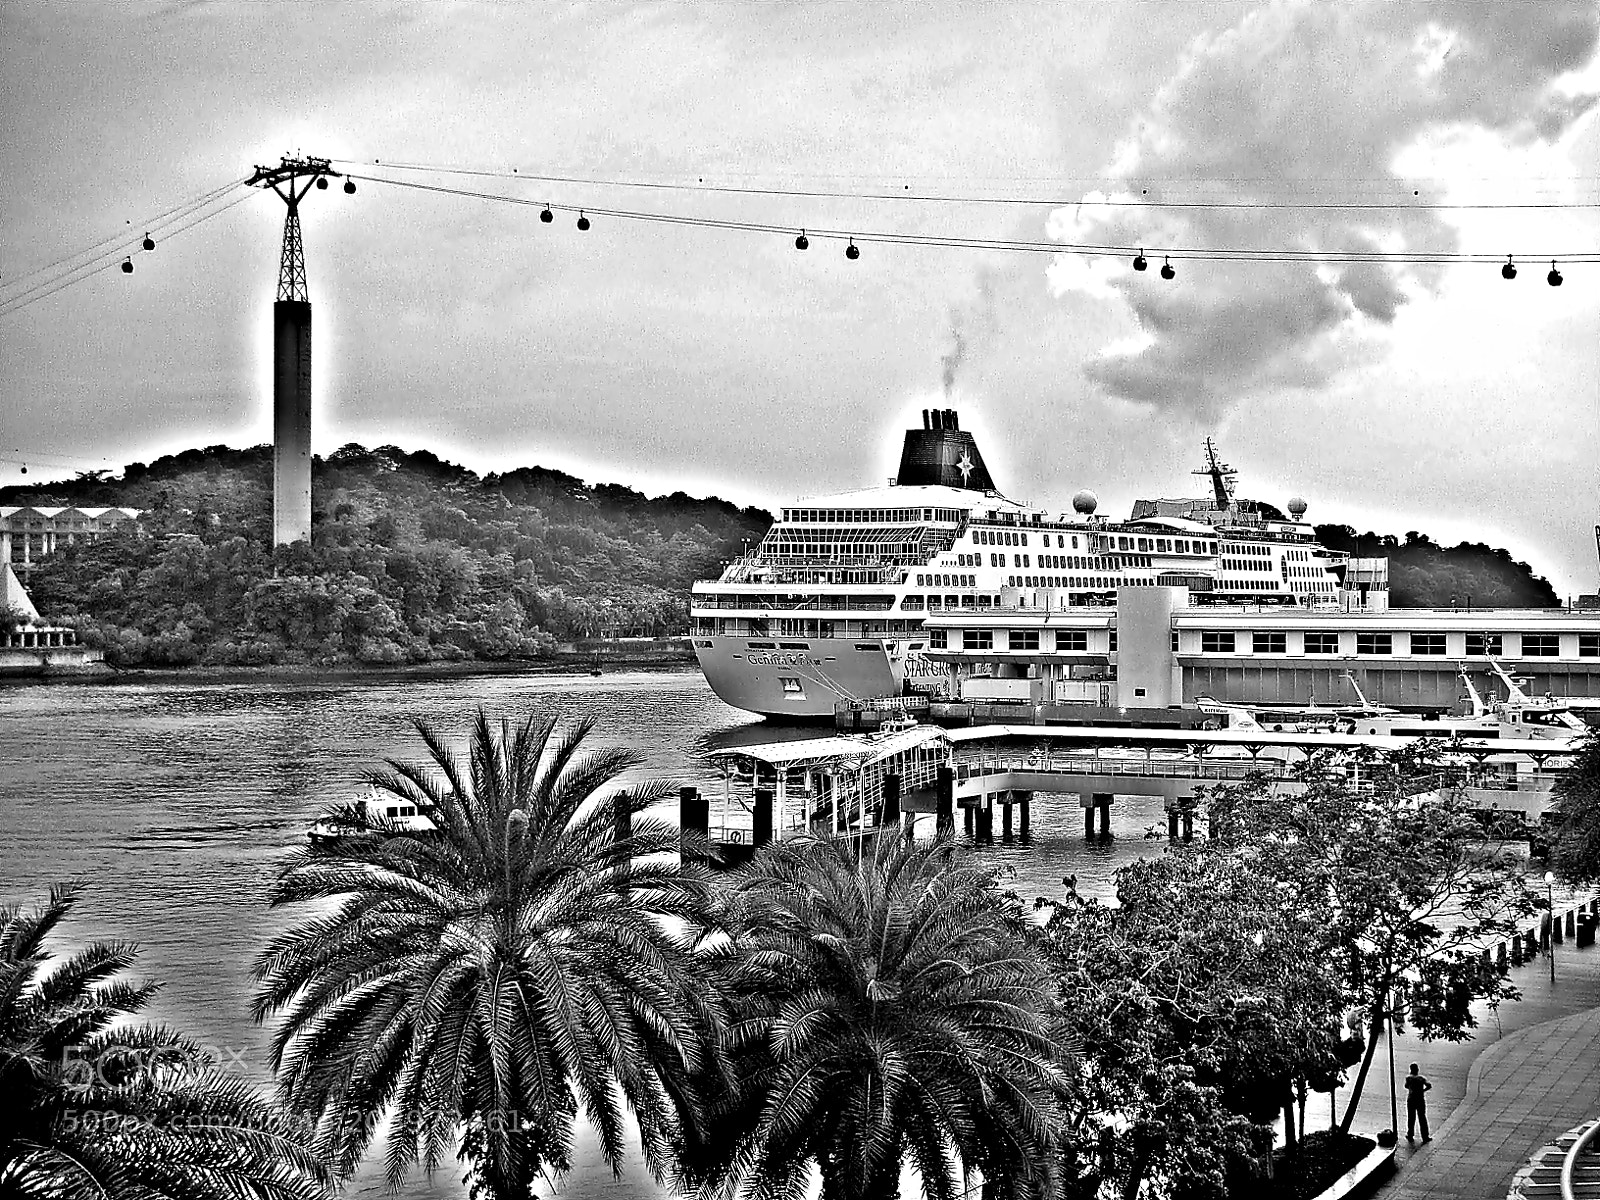 """Nikon Coolpix S1200pj sample photo. """"Habour in bw, singapore"""" photography"""